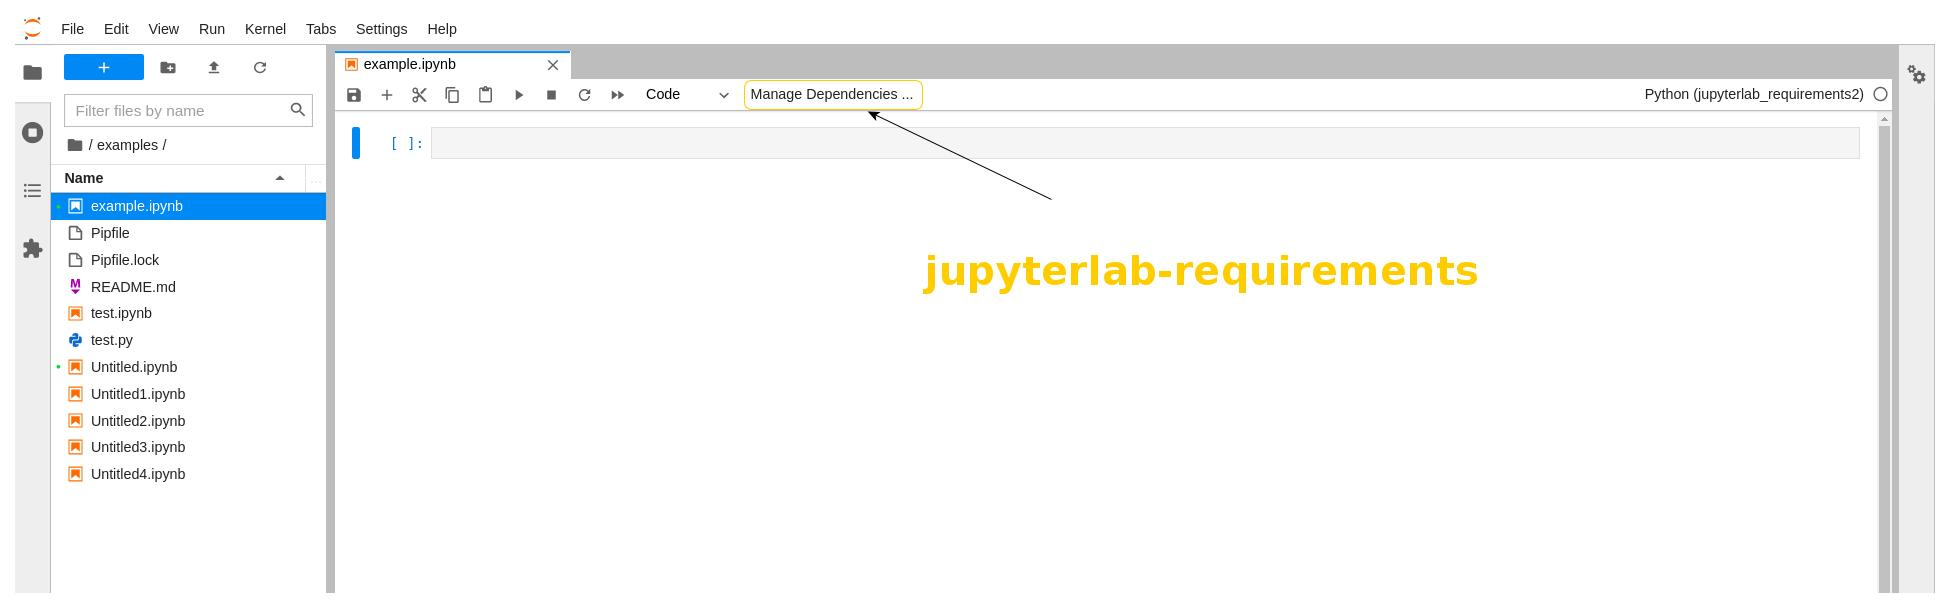 Screenshot of the jupyterlab-requirements extension with the Managed Dependencies menu item highlighted.